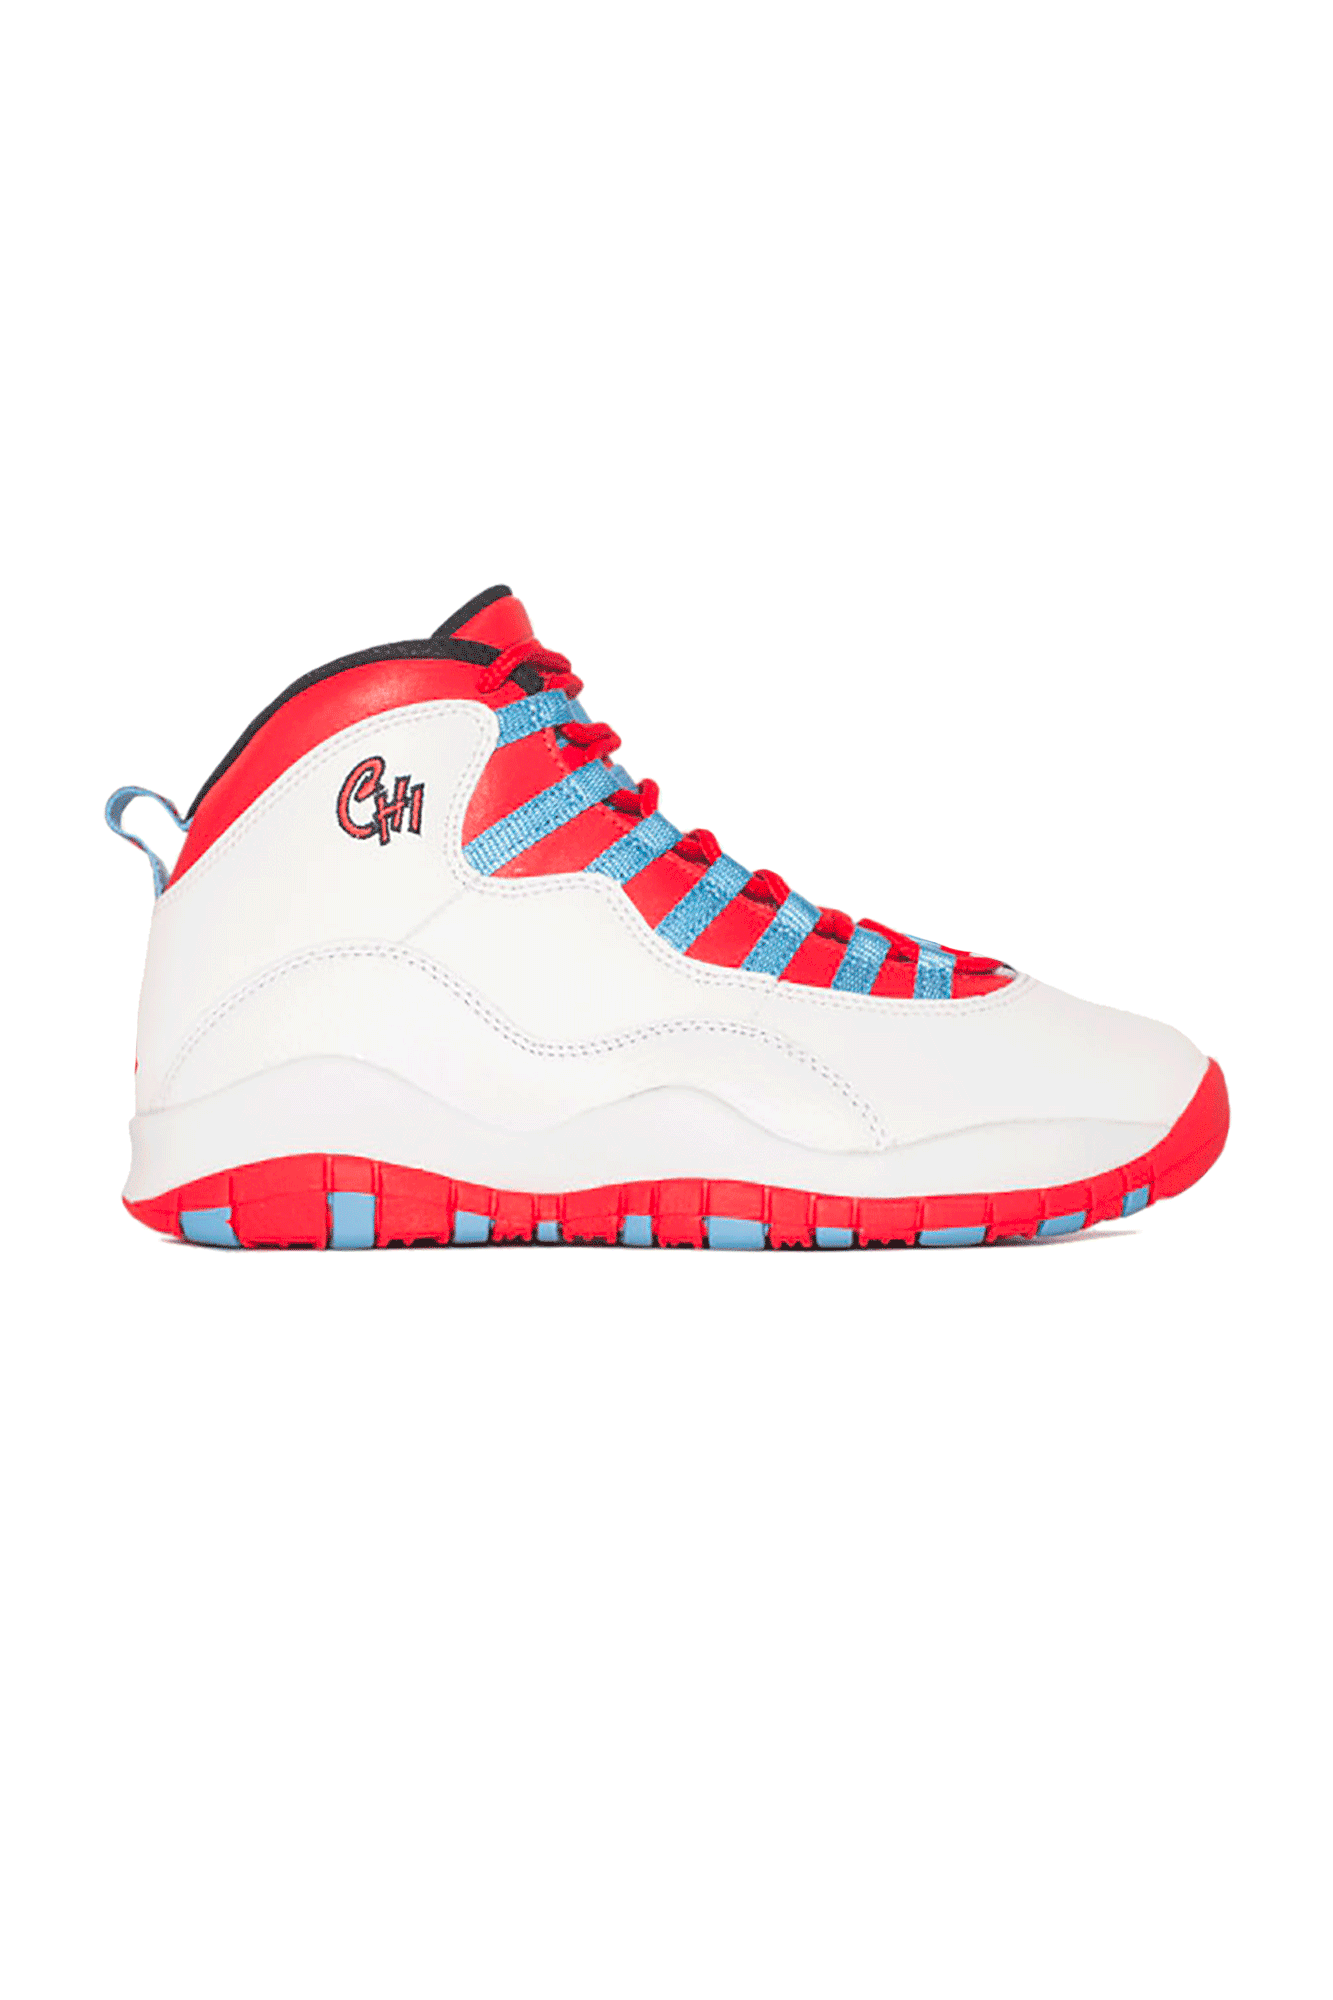 Sneakers Air Jordan 10 Retro Chicago White - One Block Down